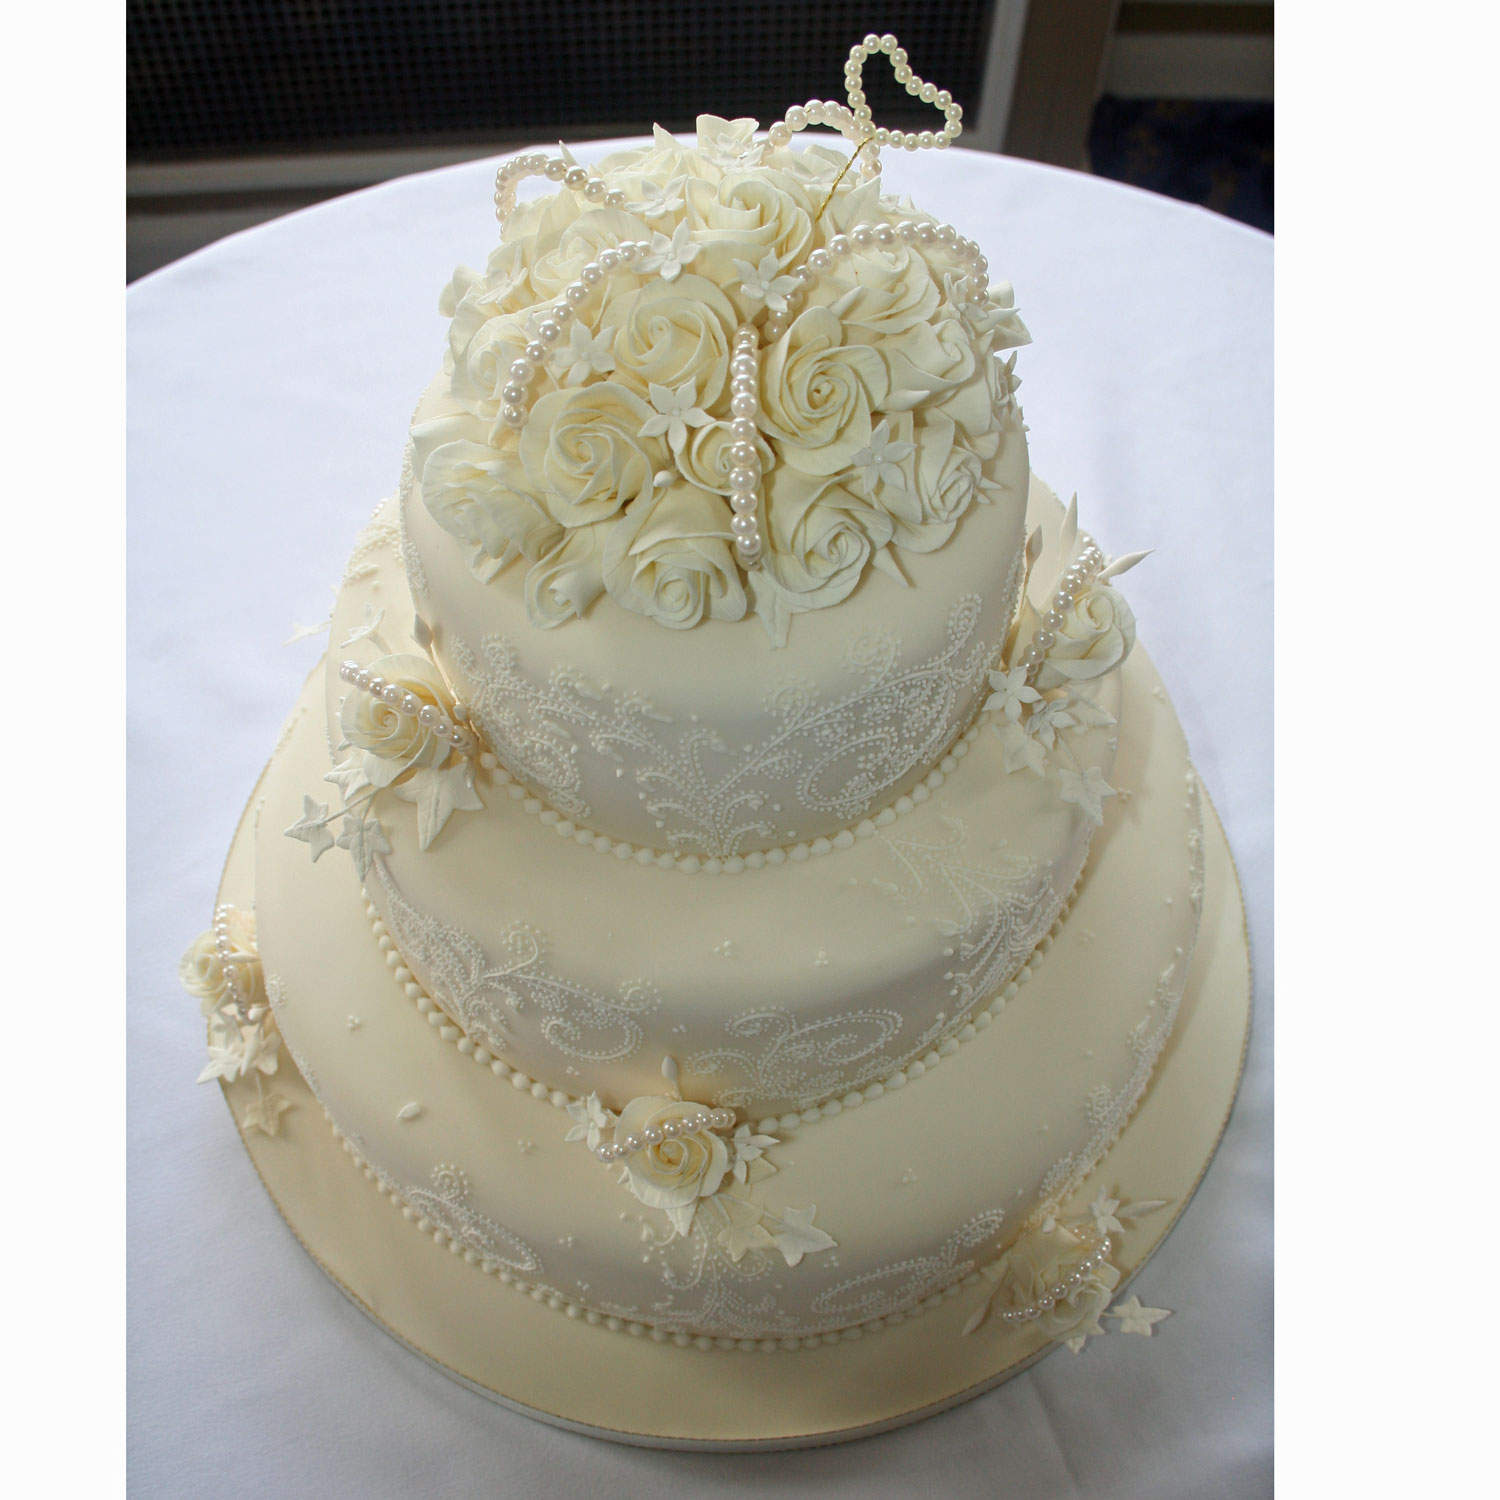 Pearl Wedding Cake decorated with detailed lace embroidery and pearls